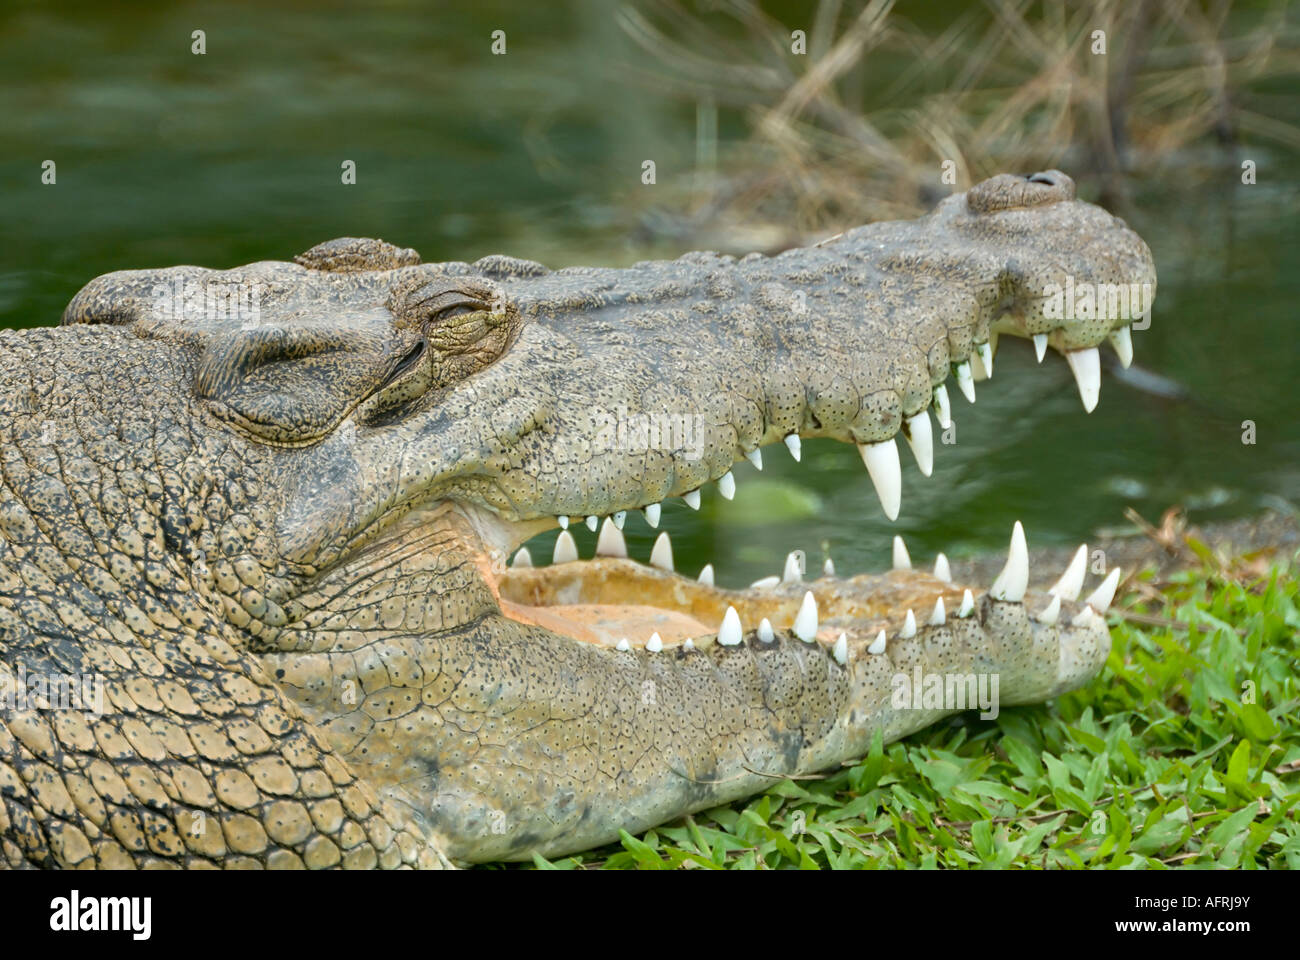 estuarine saltwater crocodile. Photographed in Queensland, Australia. - Stock Image